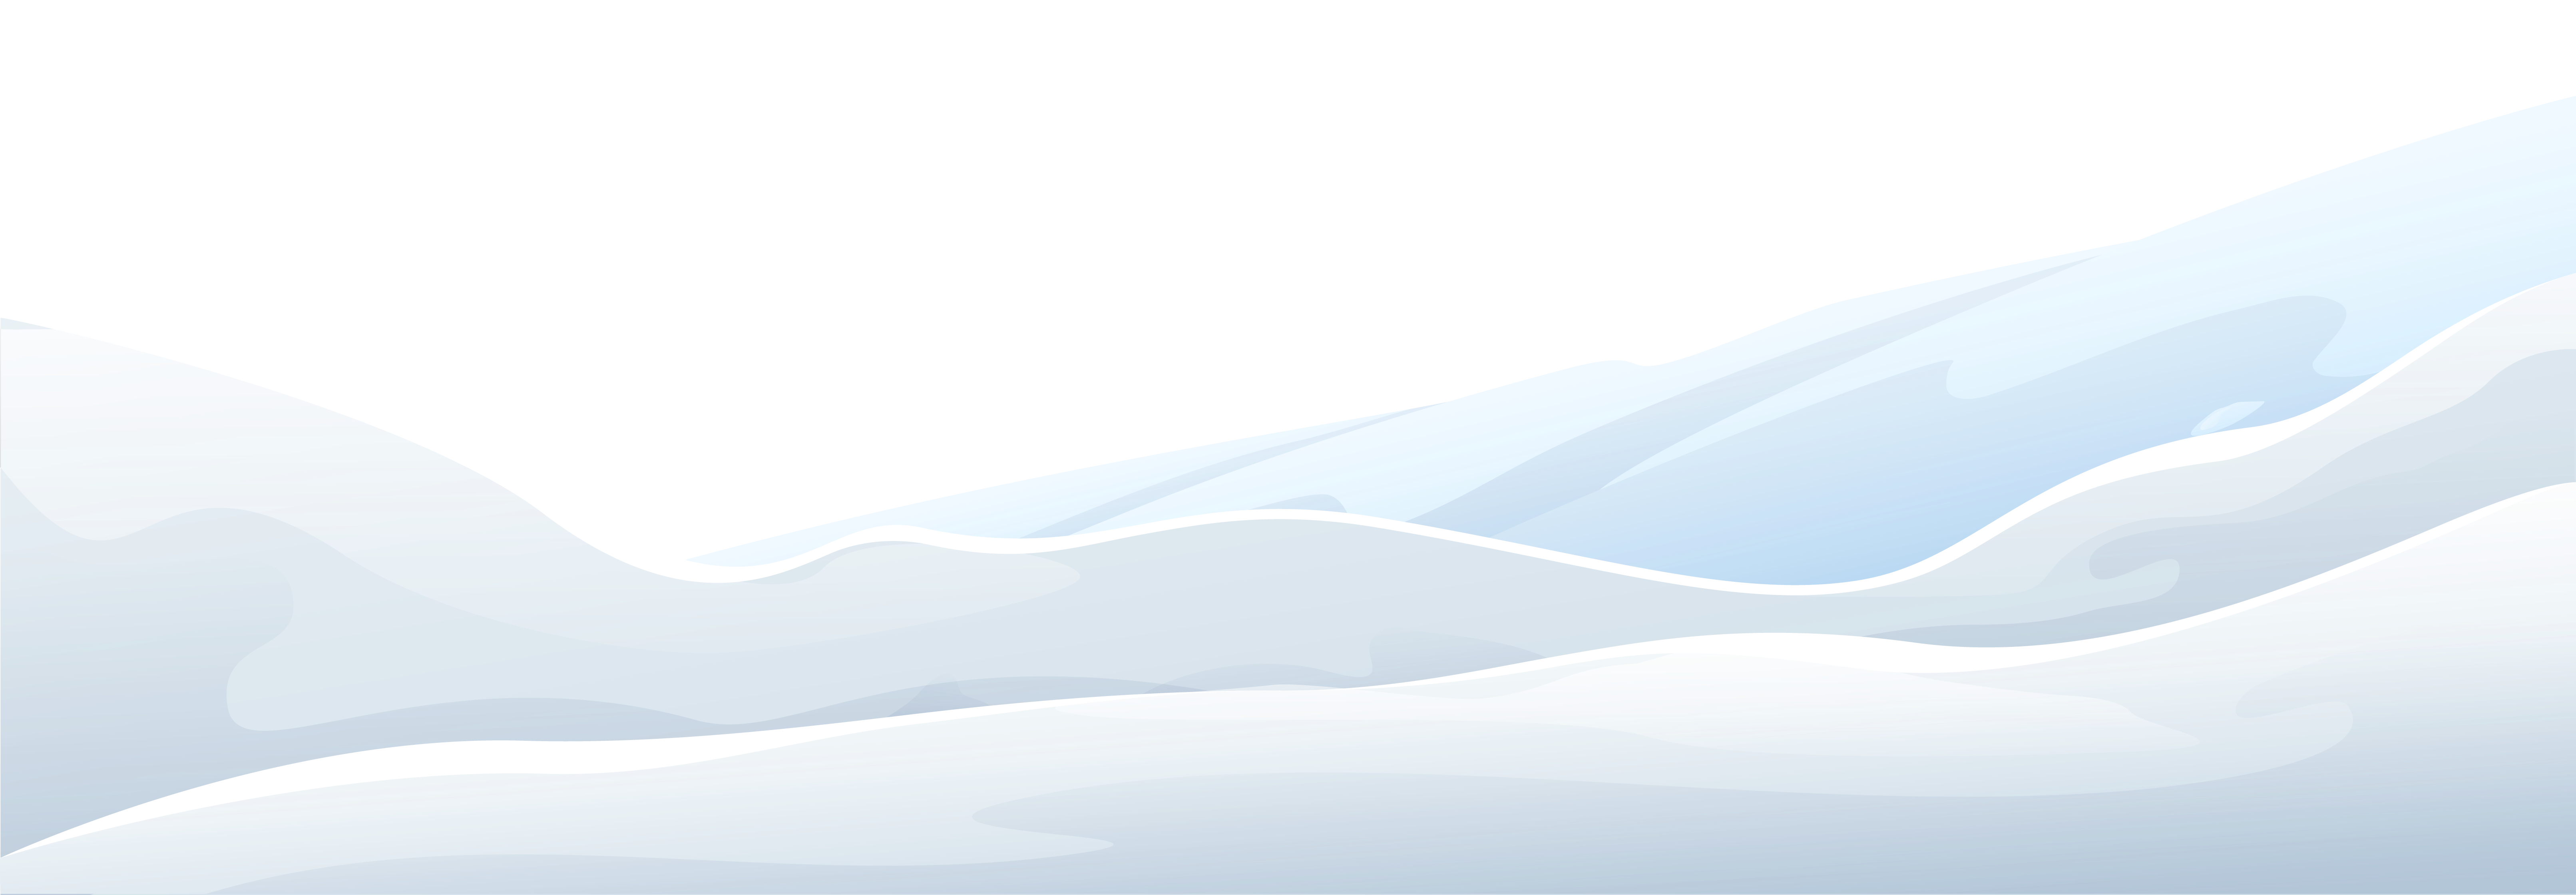 Snow ground png image. Winter clipart backdrop